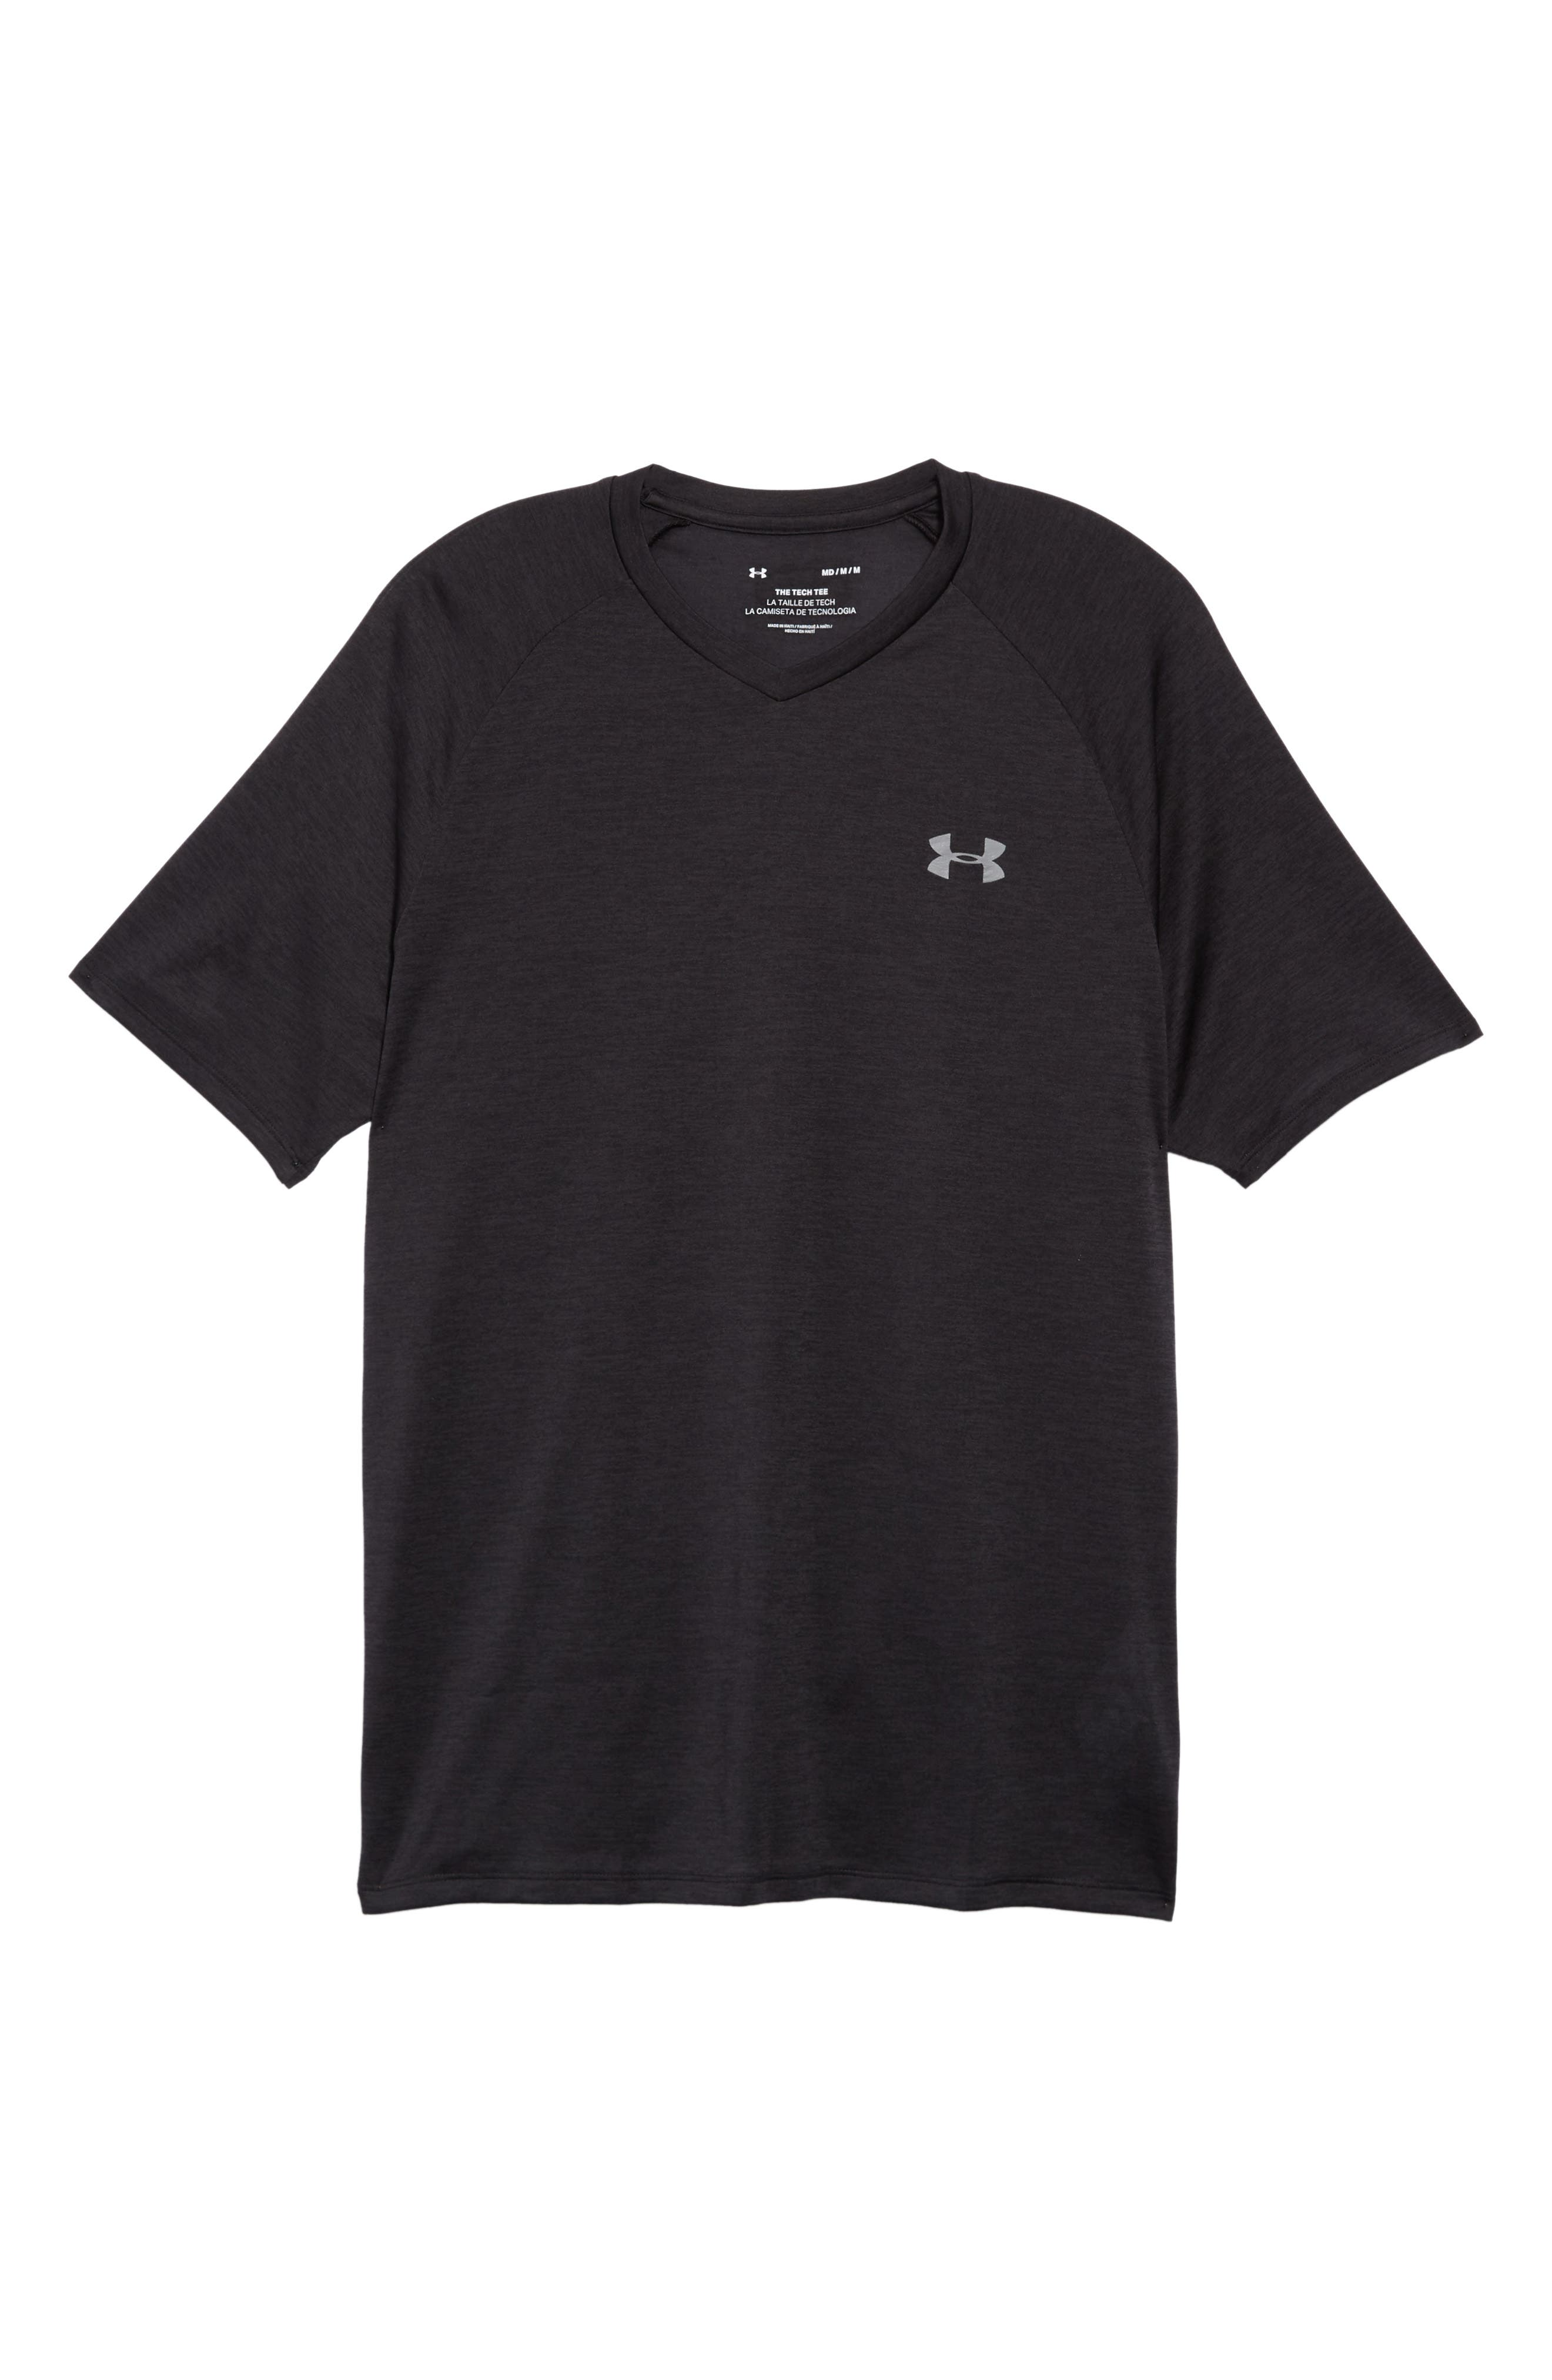 Loose Fit Tech Tee,                             Alternate thumbnail 6, color,                             001